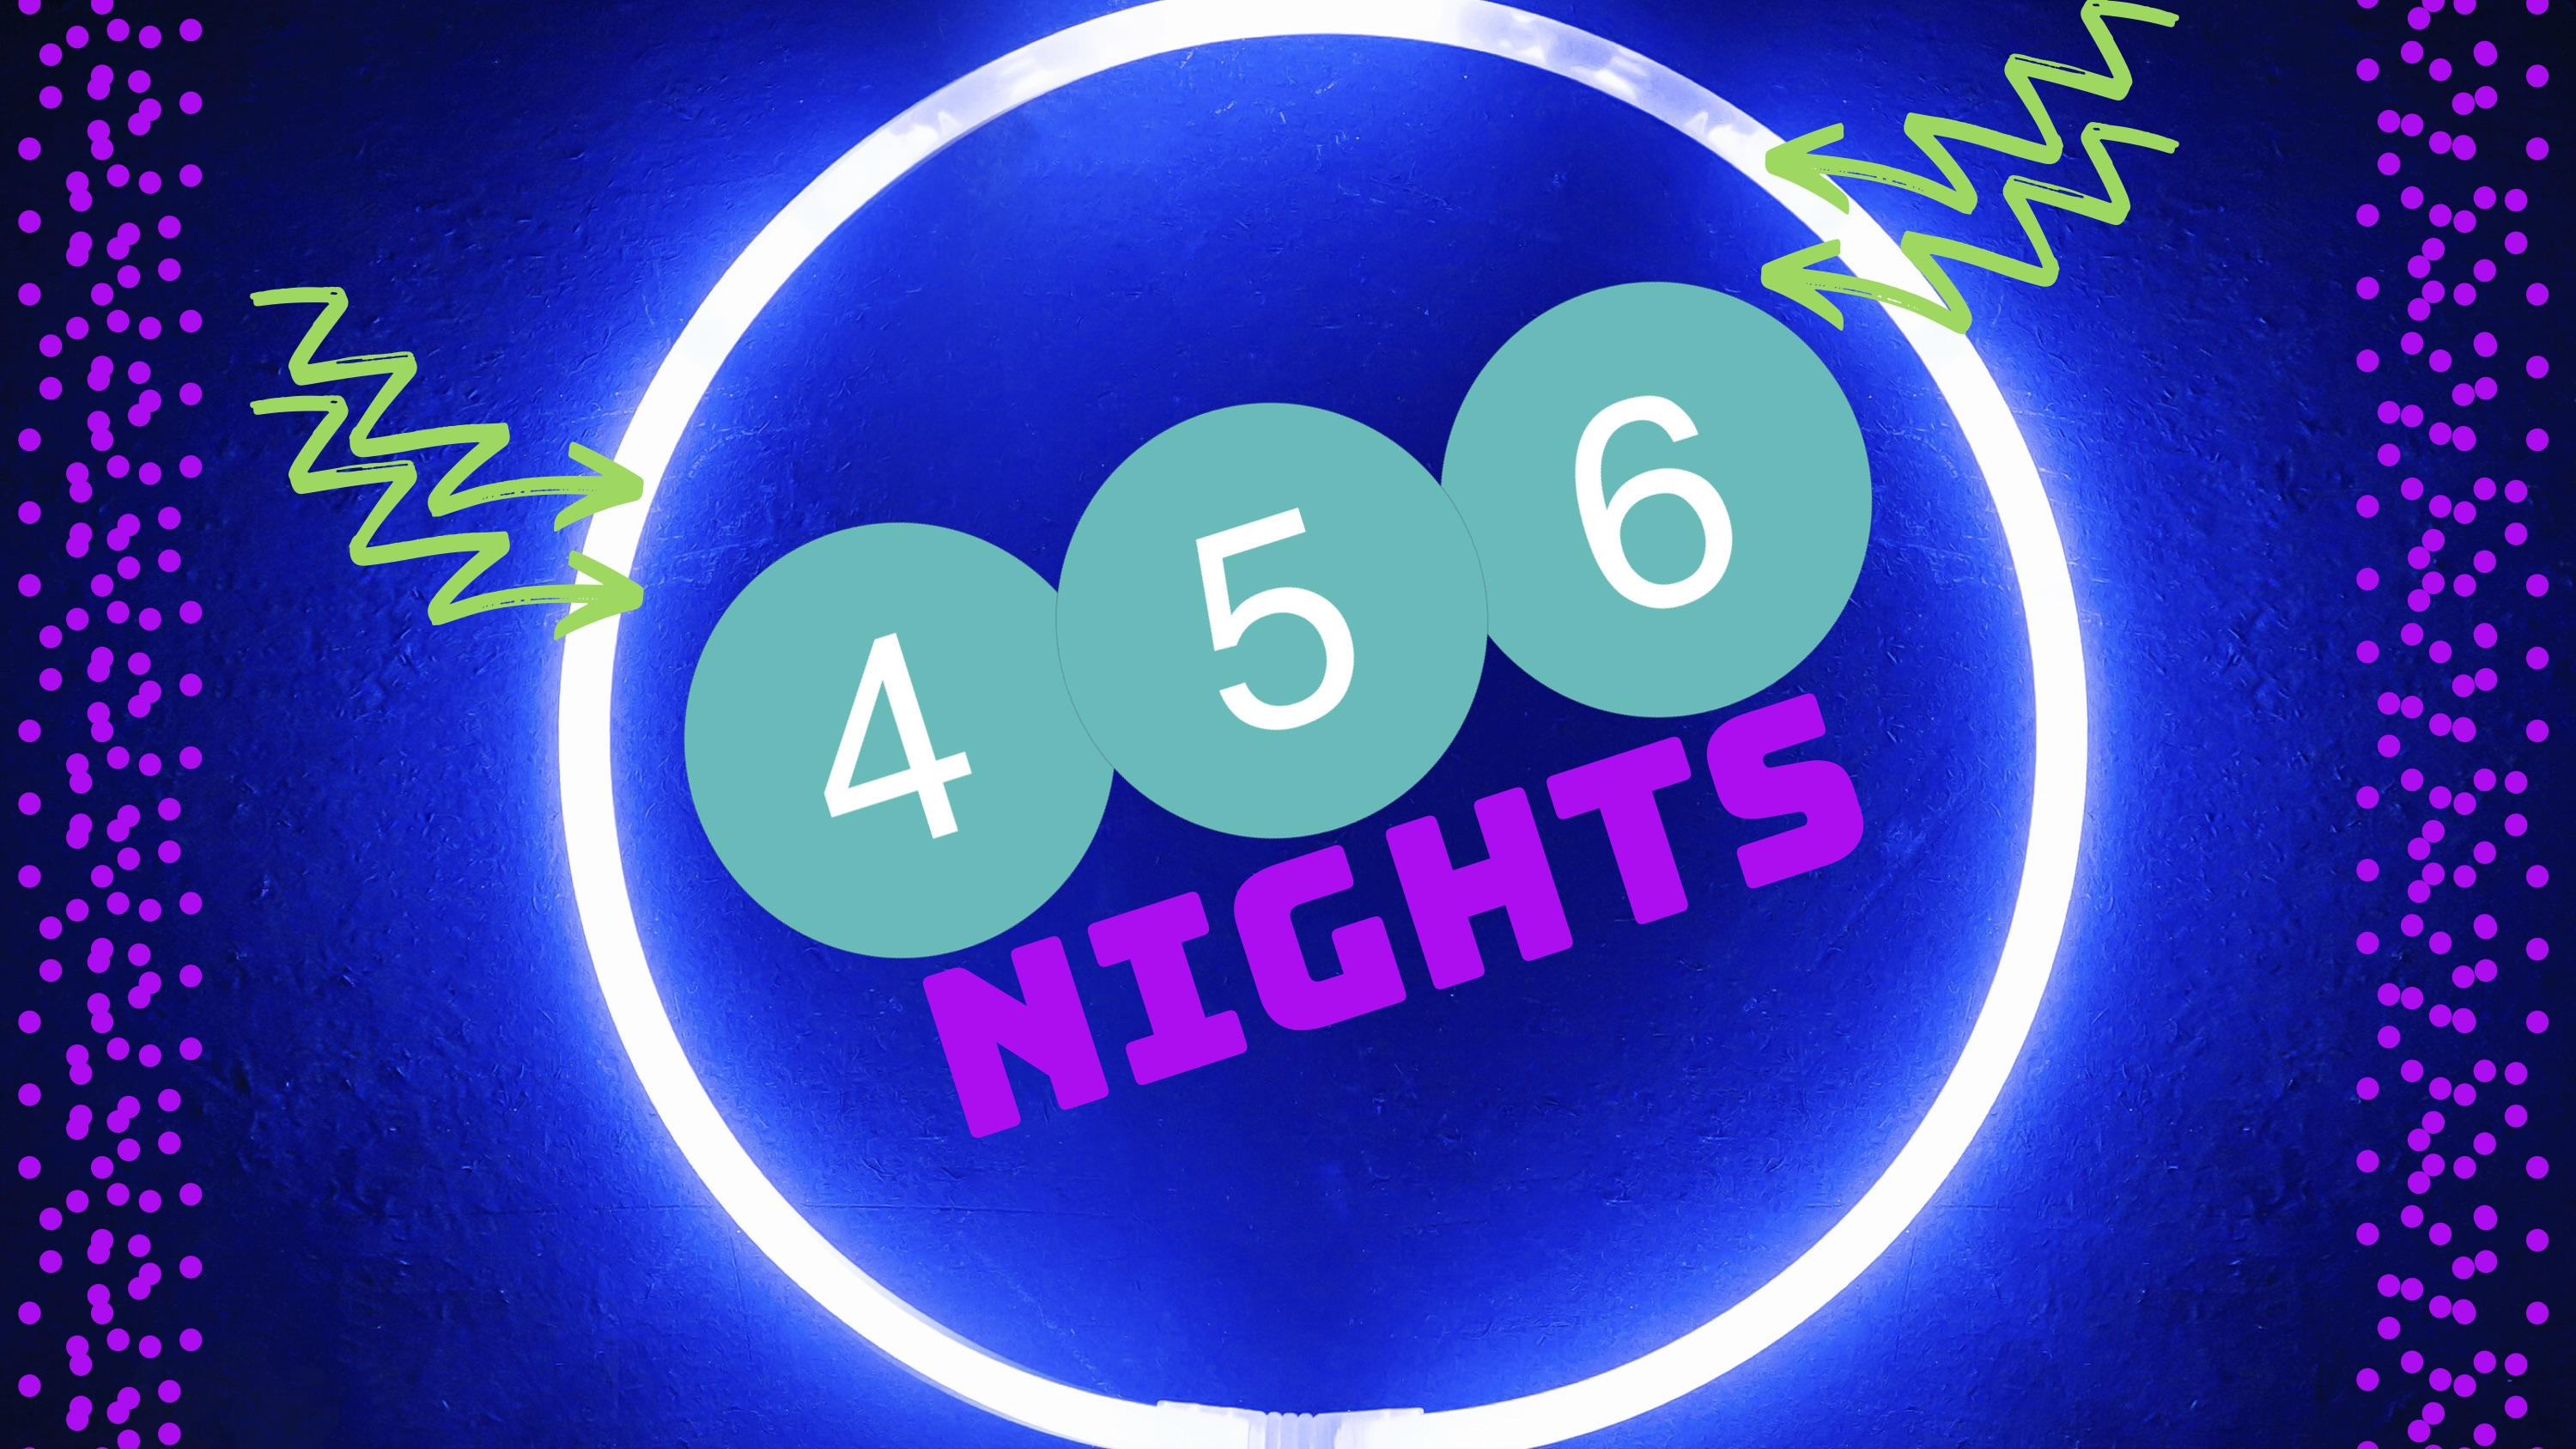 456 NIGHTS Now image